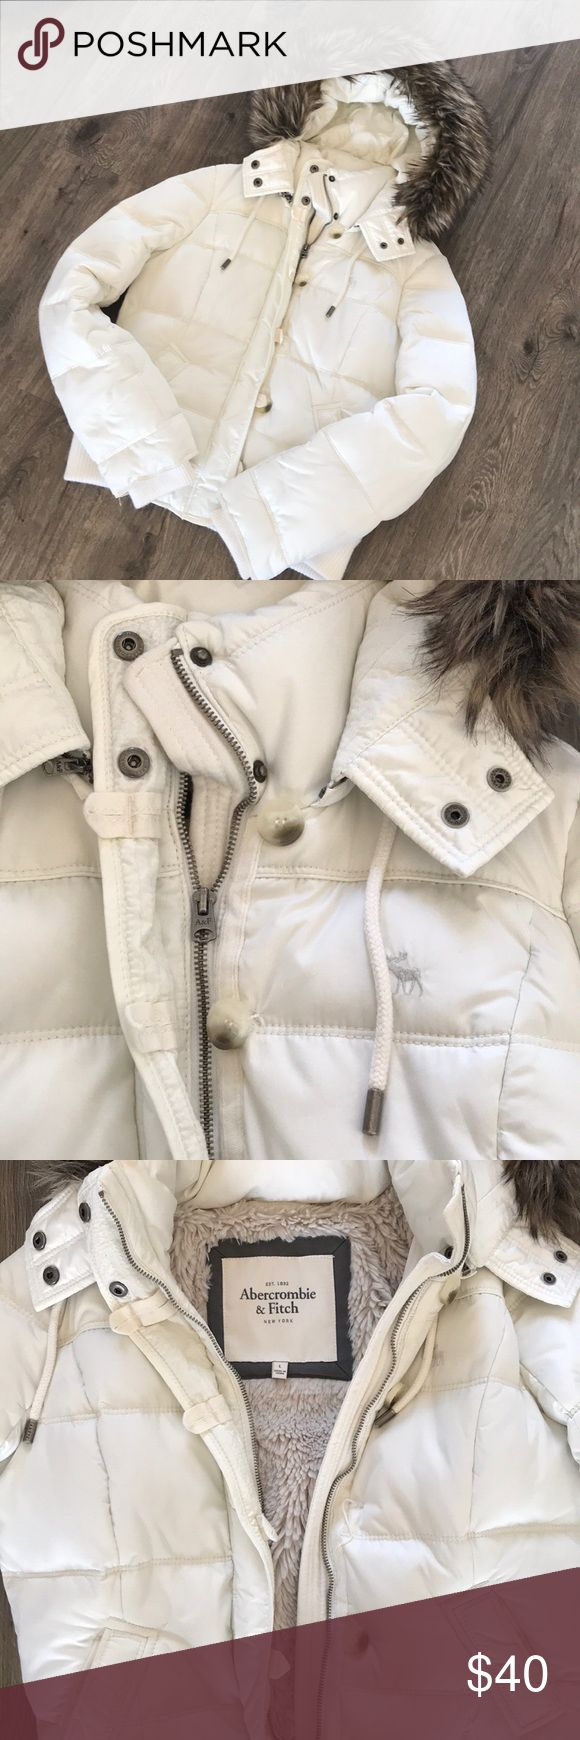 Abercrombie and Fitch snow jacket Warm puffy white jacket with removable faux fur lined hood. Inside of jacket lined with taupe colored faux fur. Abercrombie & Fitch Jackets & Coats Puffers